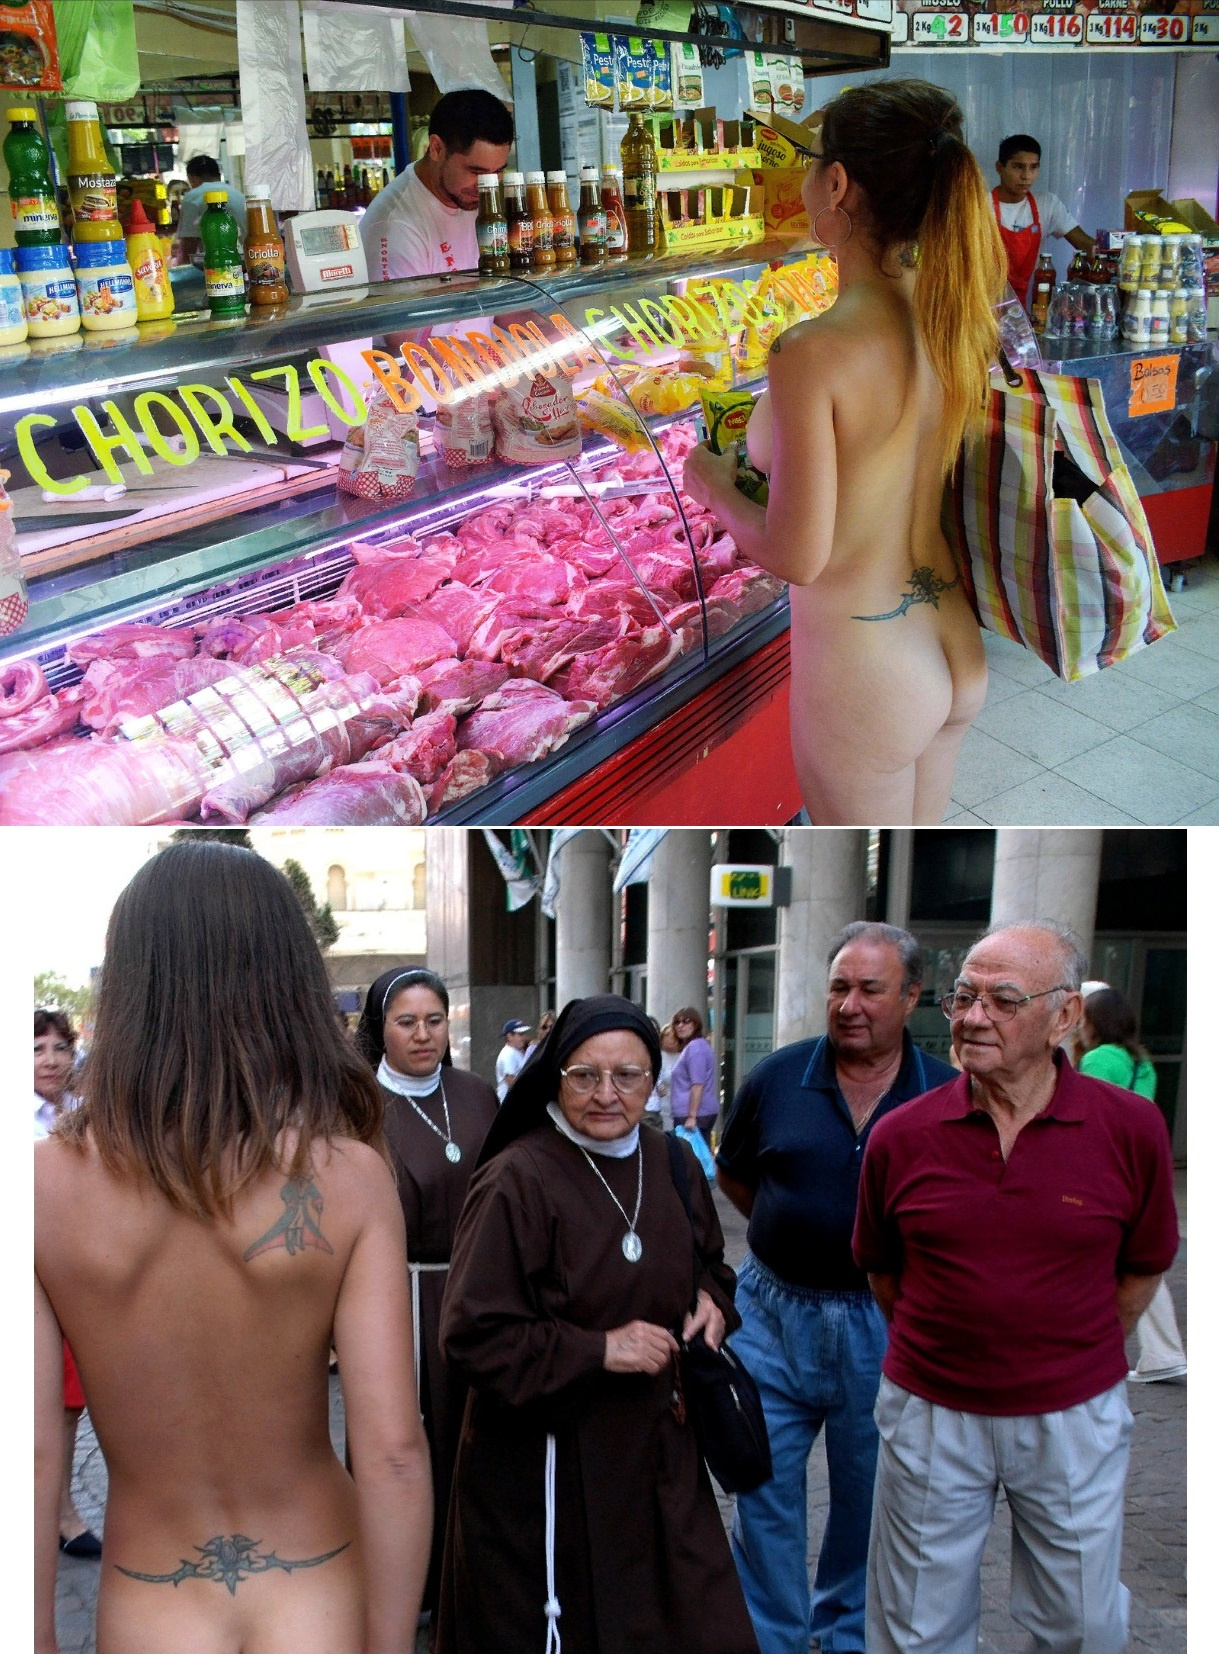 Most Embarrassing Moments Caught On Camera (44 Photos + 1 GIFs)